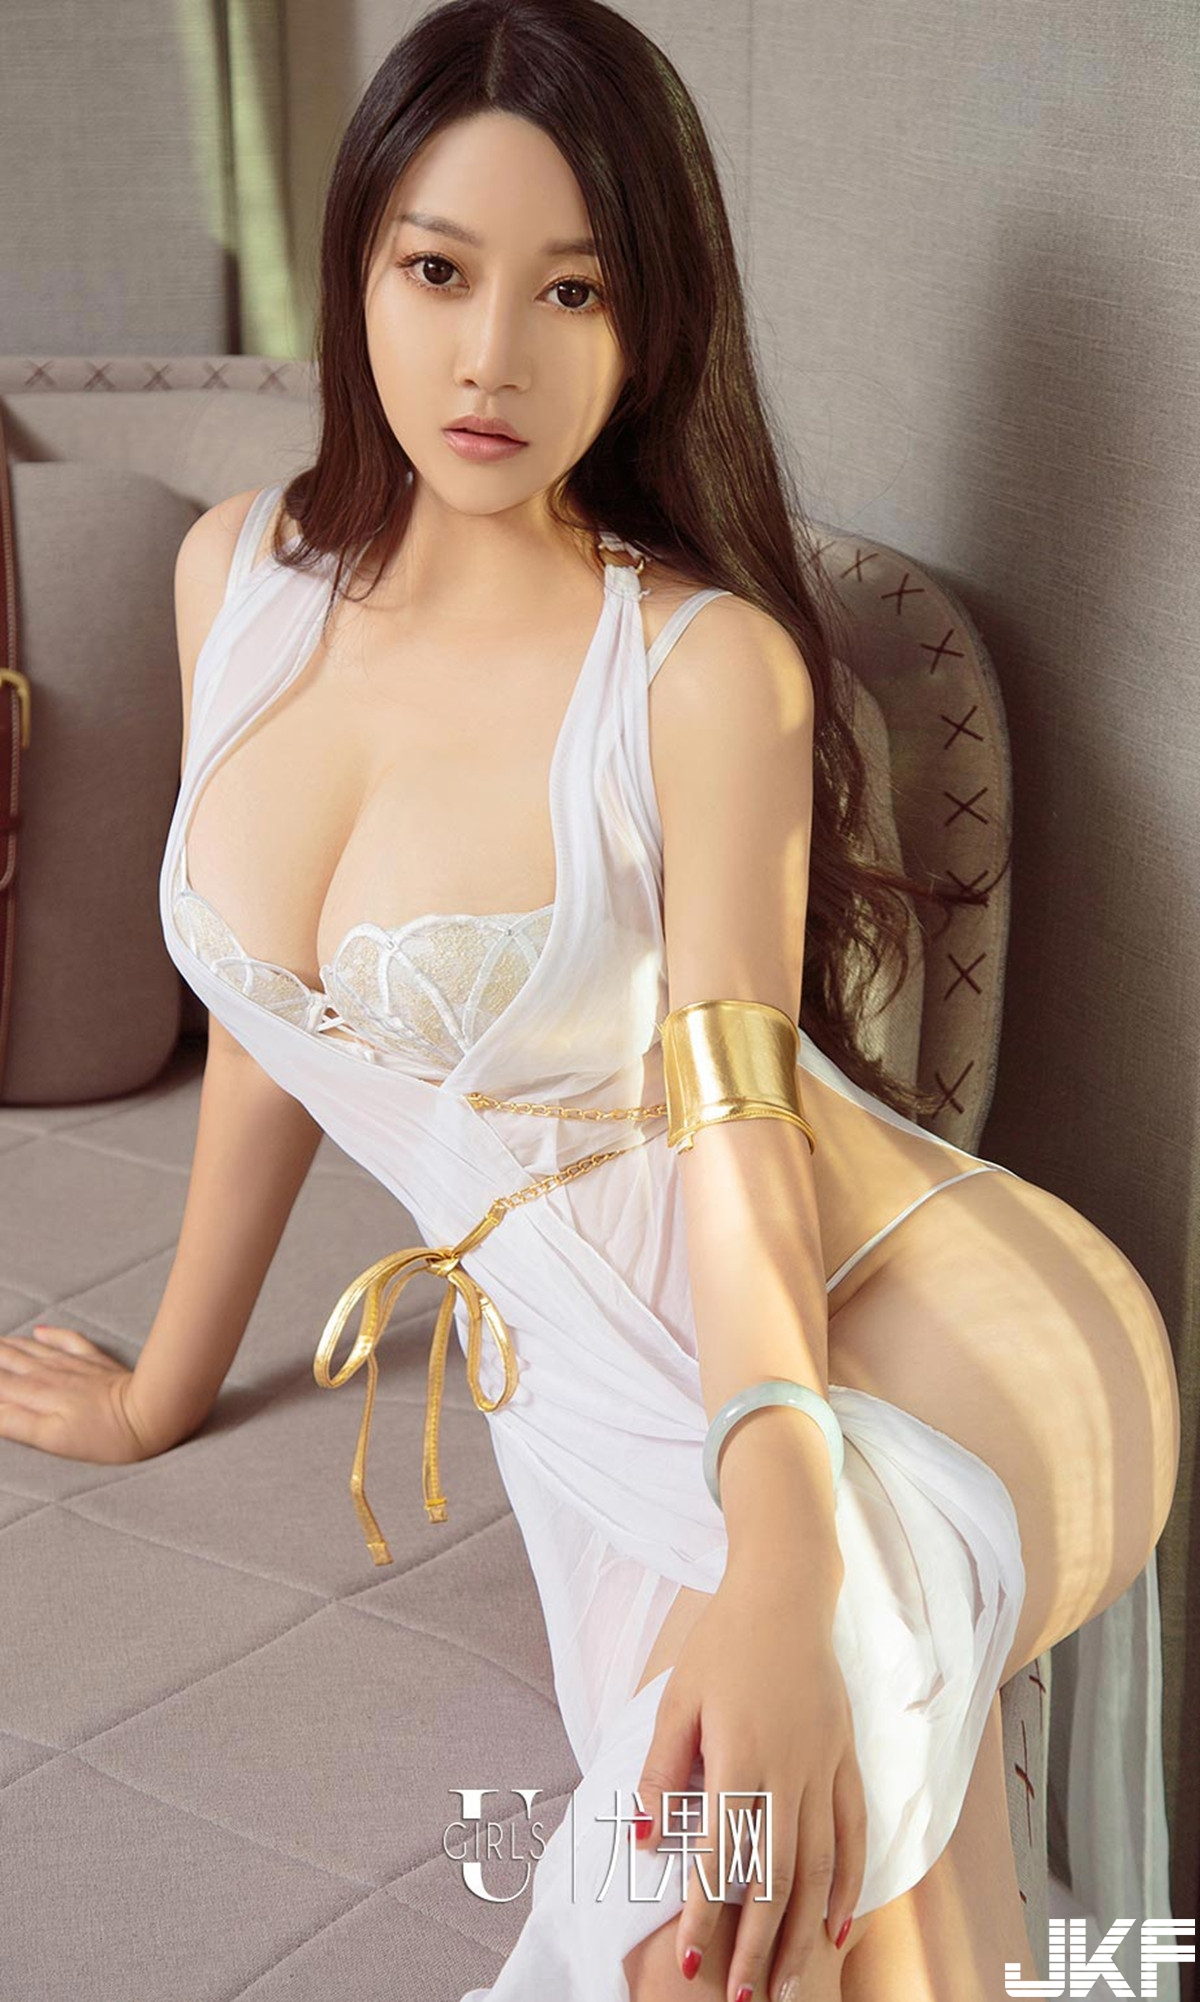 gorgeous Chinese in hot lingerie